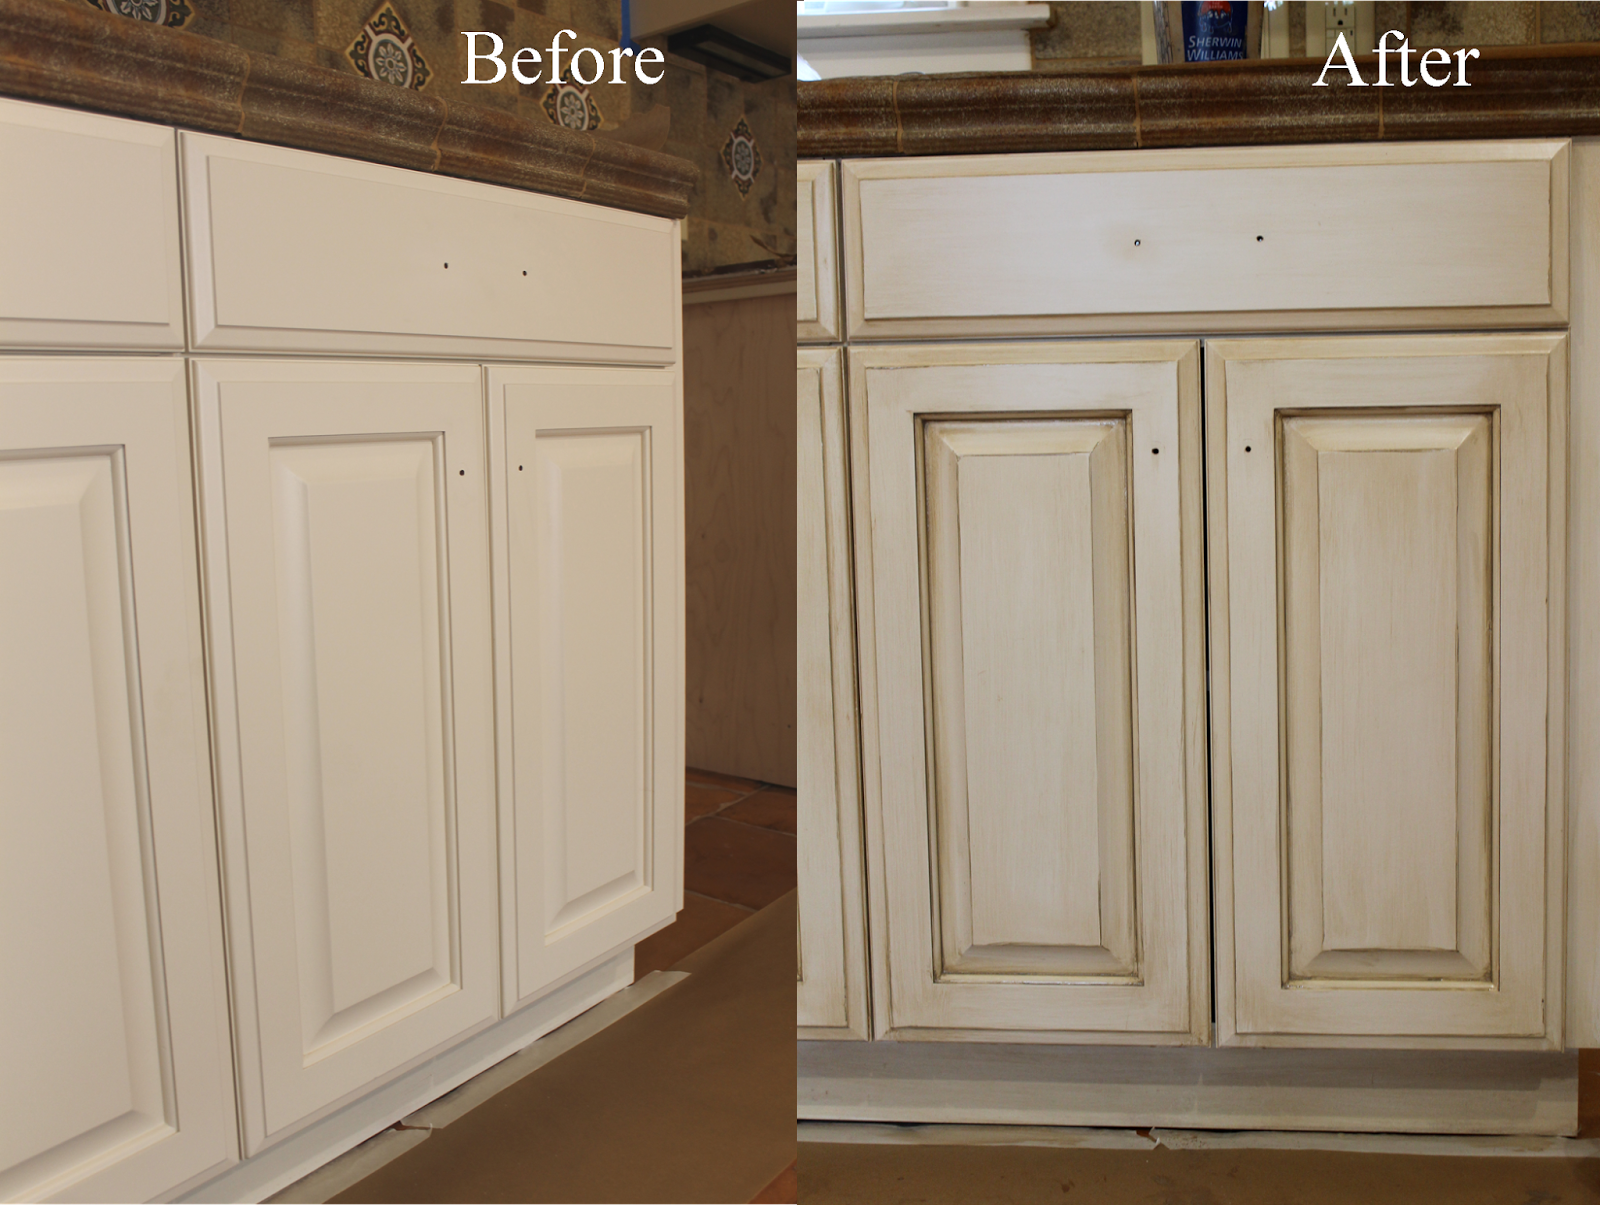 Kitchen cabinet paint and glaze colors - Glazing Antiquing Cabinets A Complete How To Glazing Cabinetsglazed Kitchen Cabinetspainting